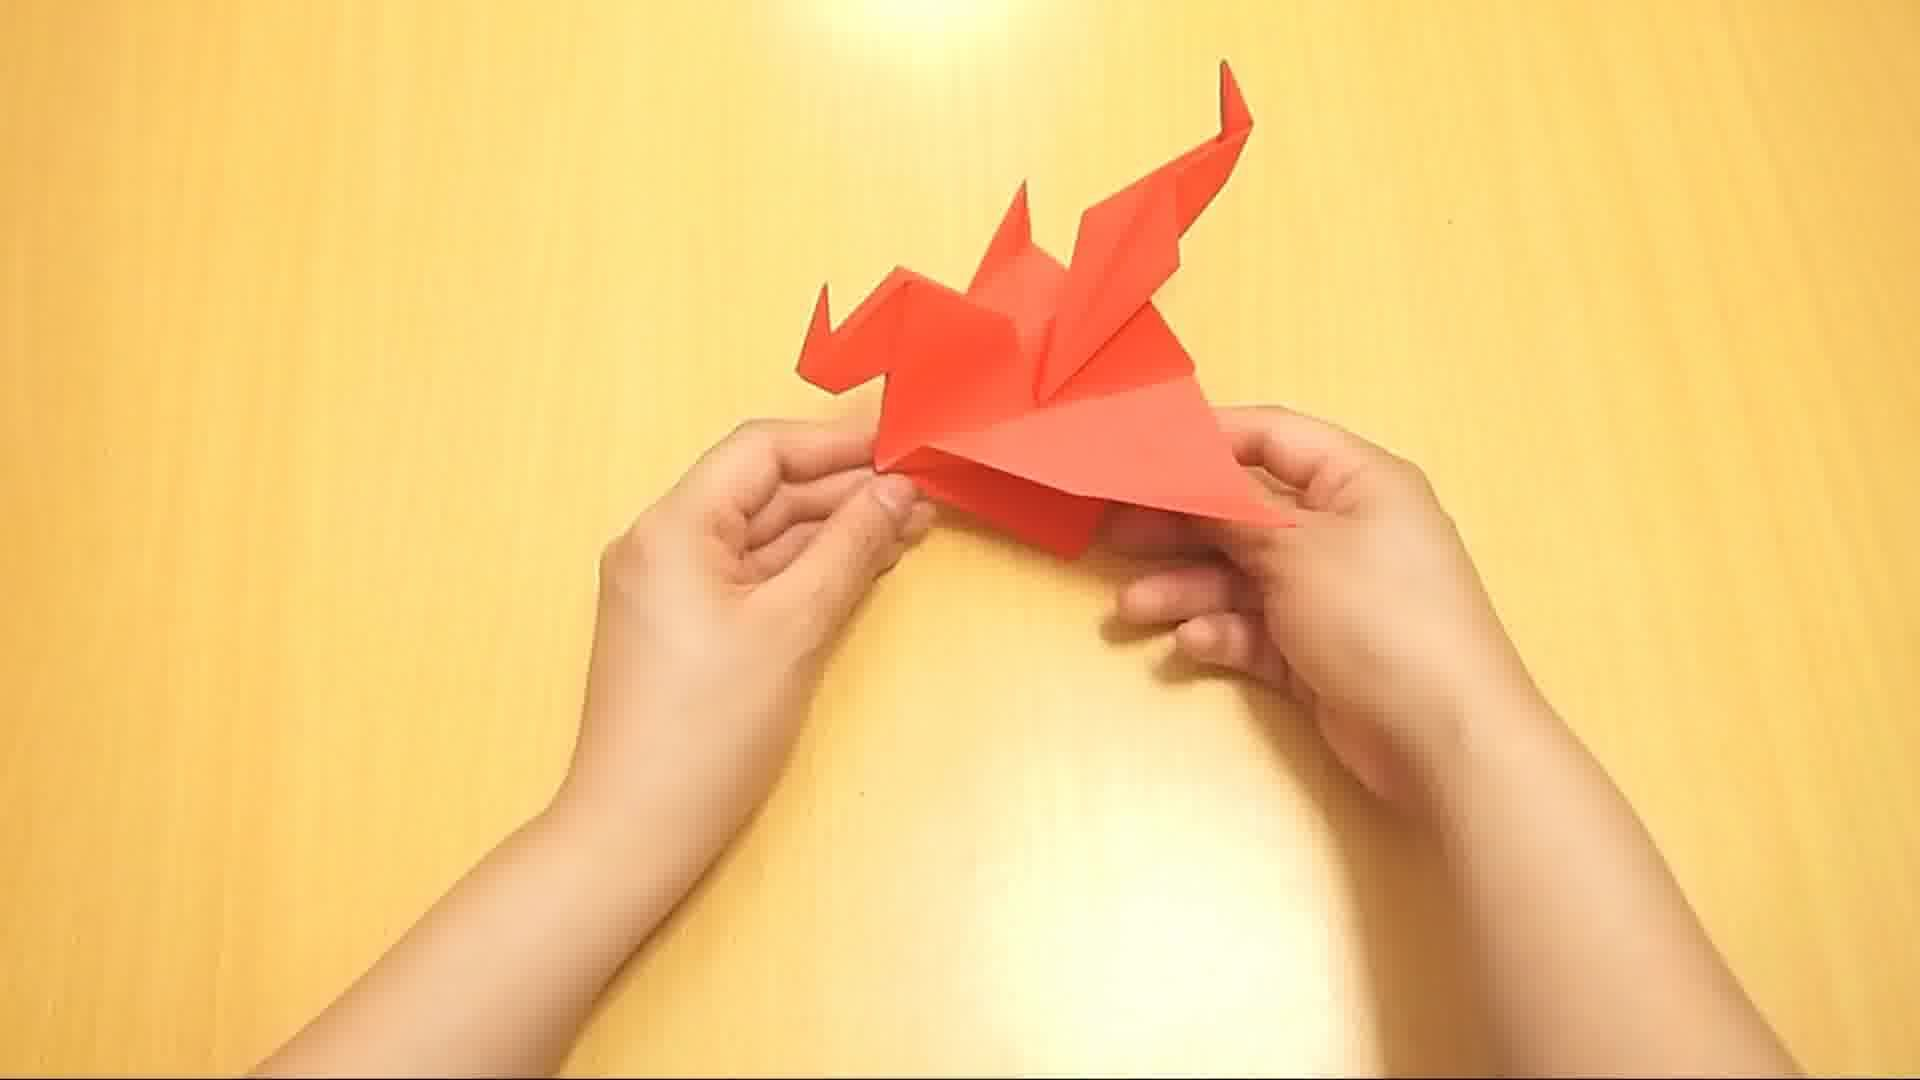 Origami - How to make an easy origami dragon - YouTube | 1080x1920